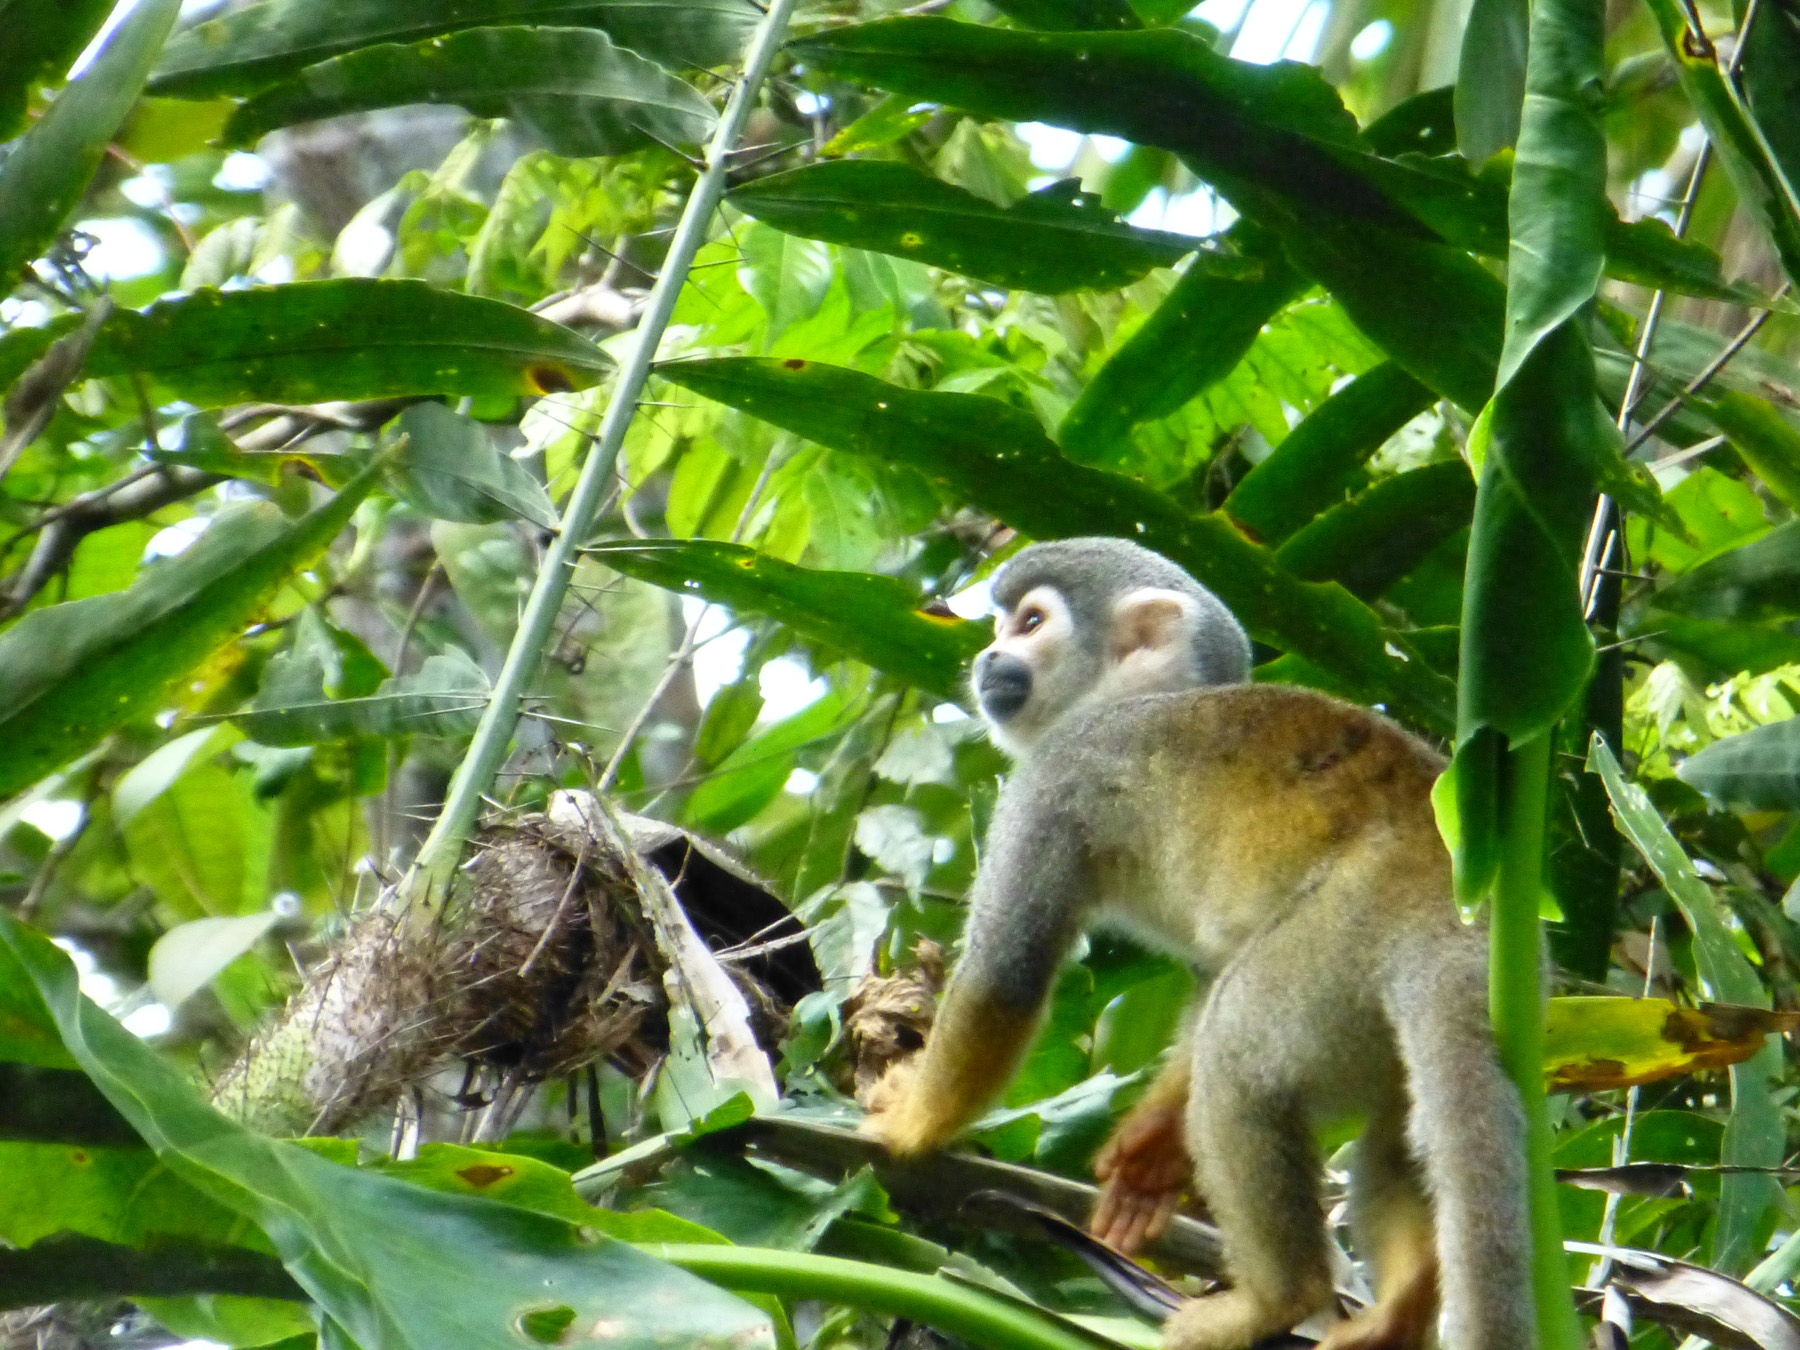 Here's just one of many squirrel monkeys making our day.